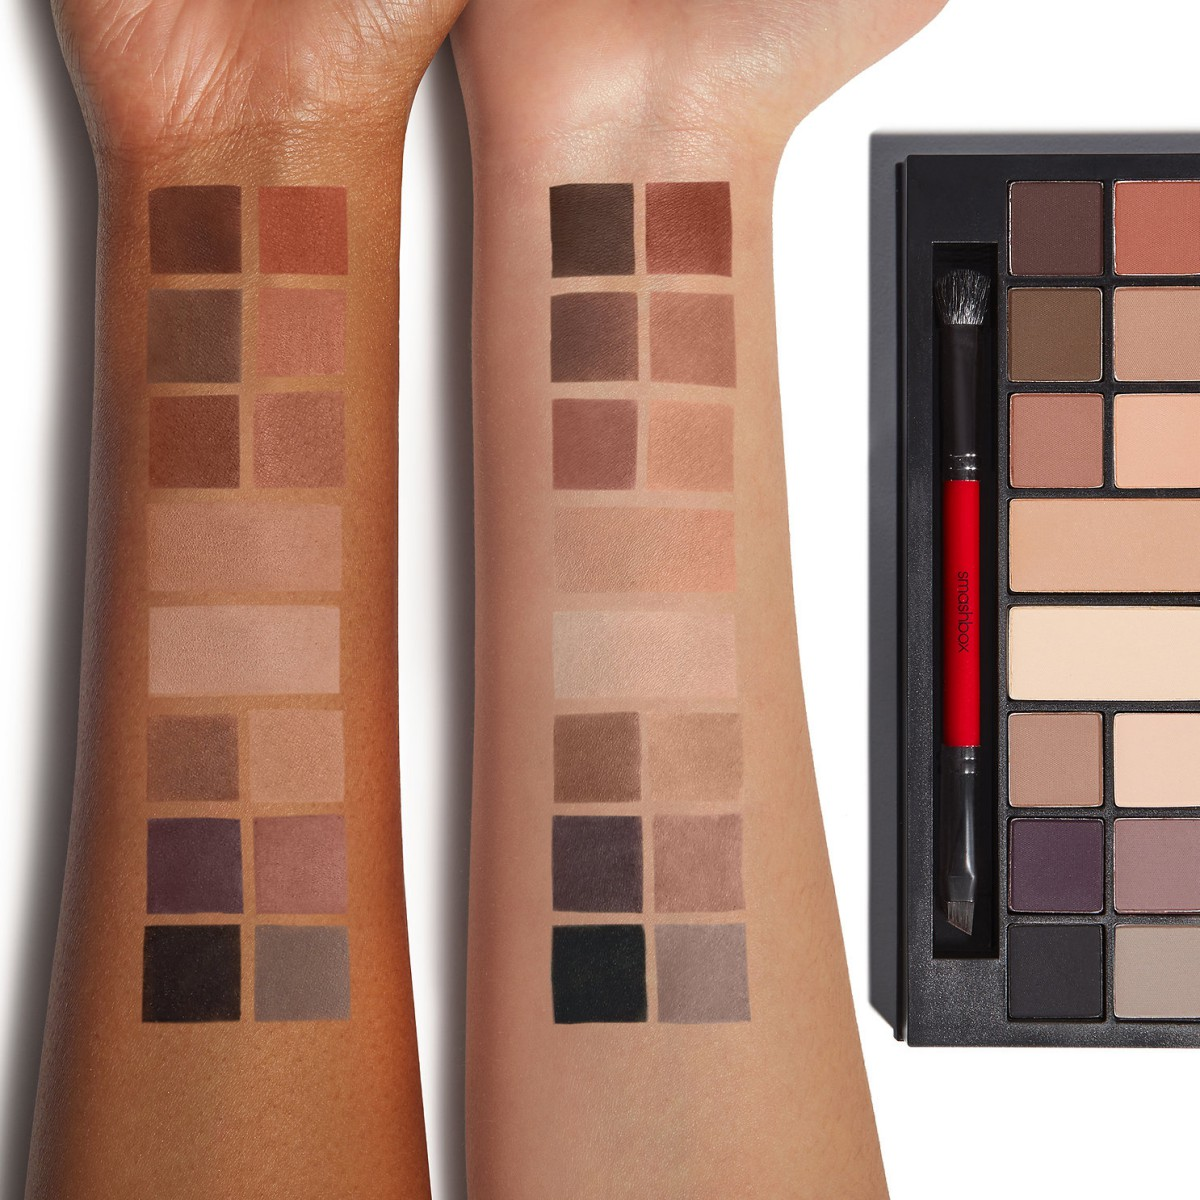 Smashbox Matte Exposure Palette Swatches